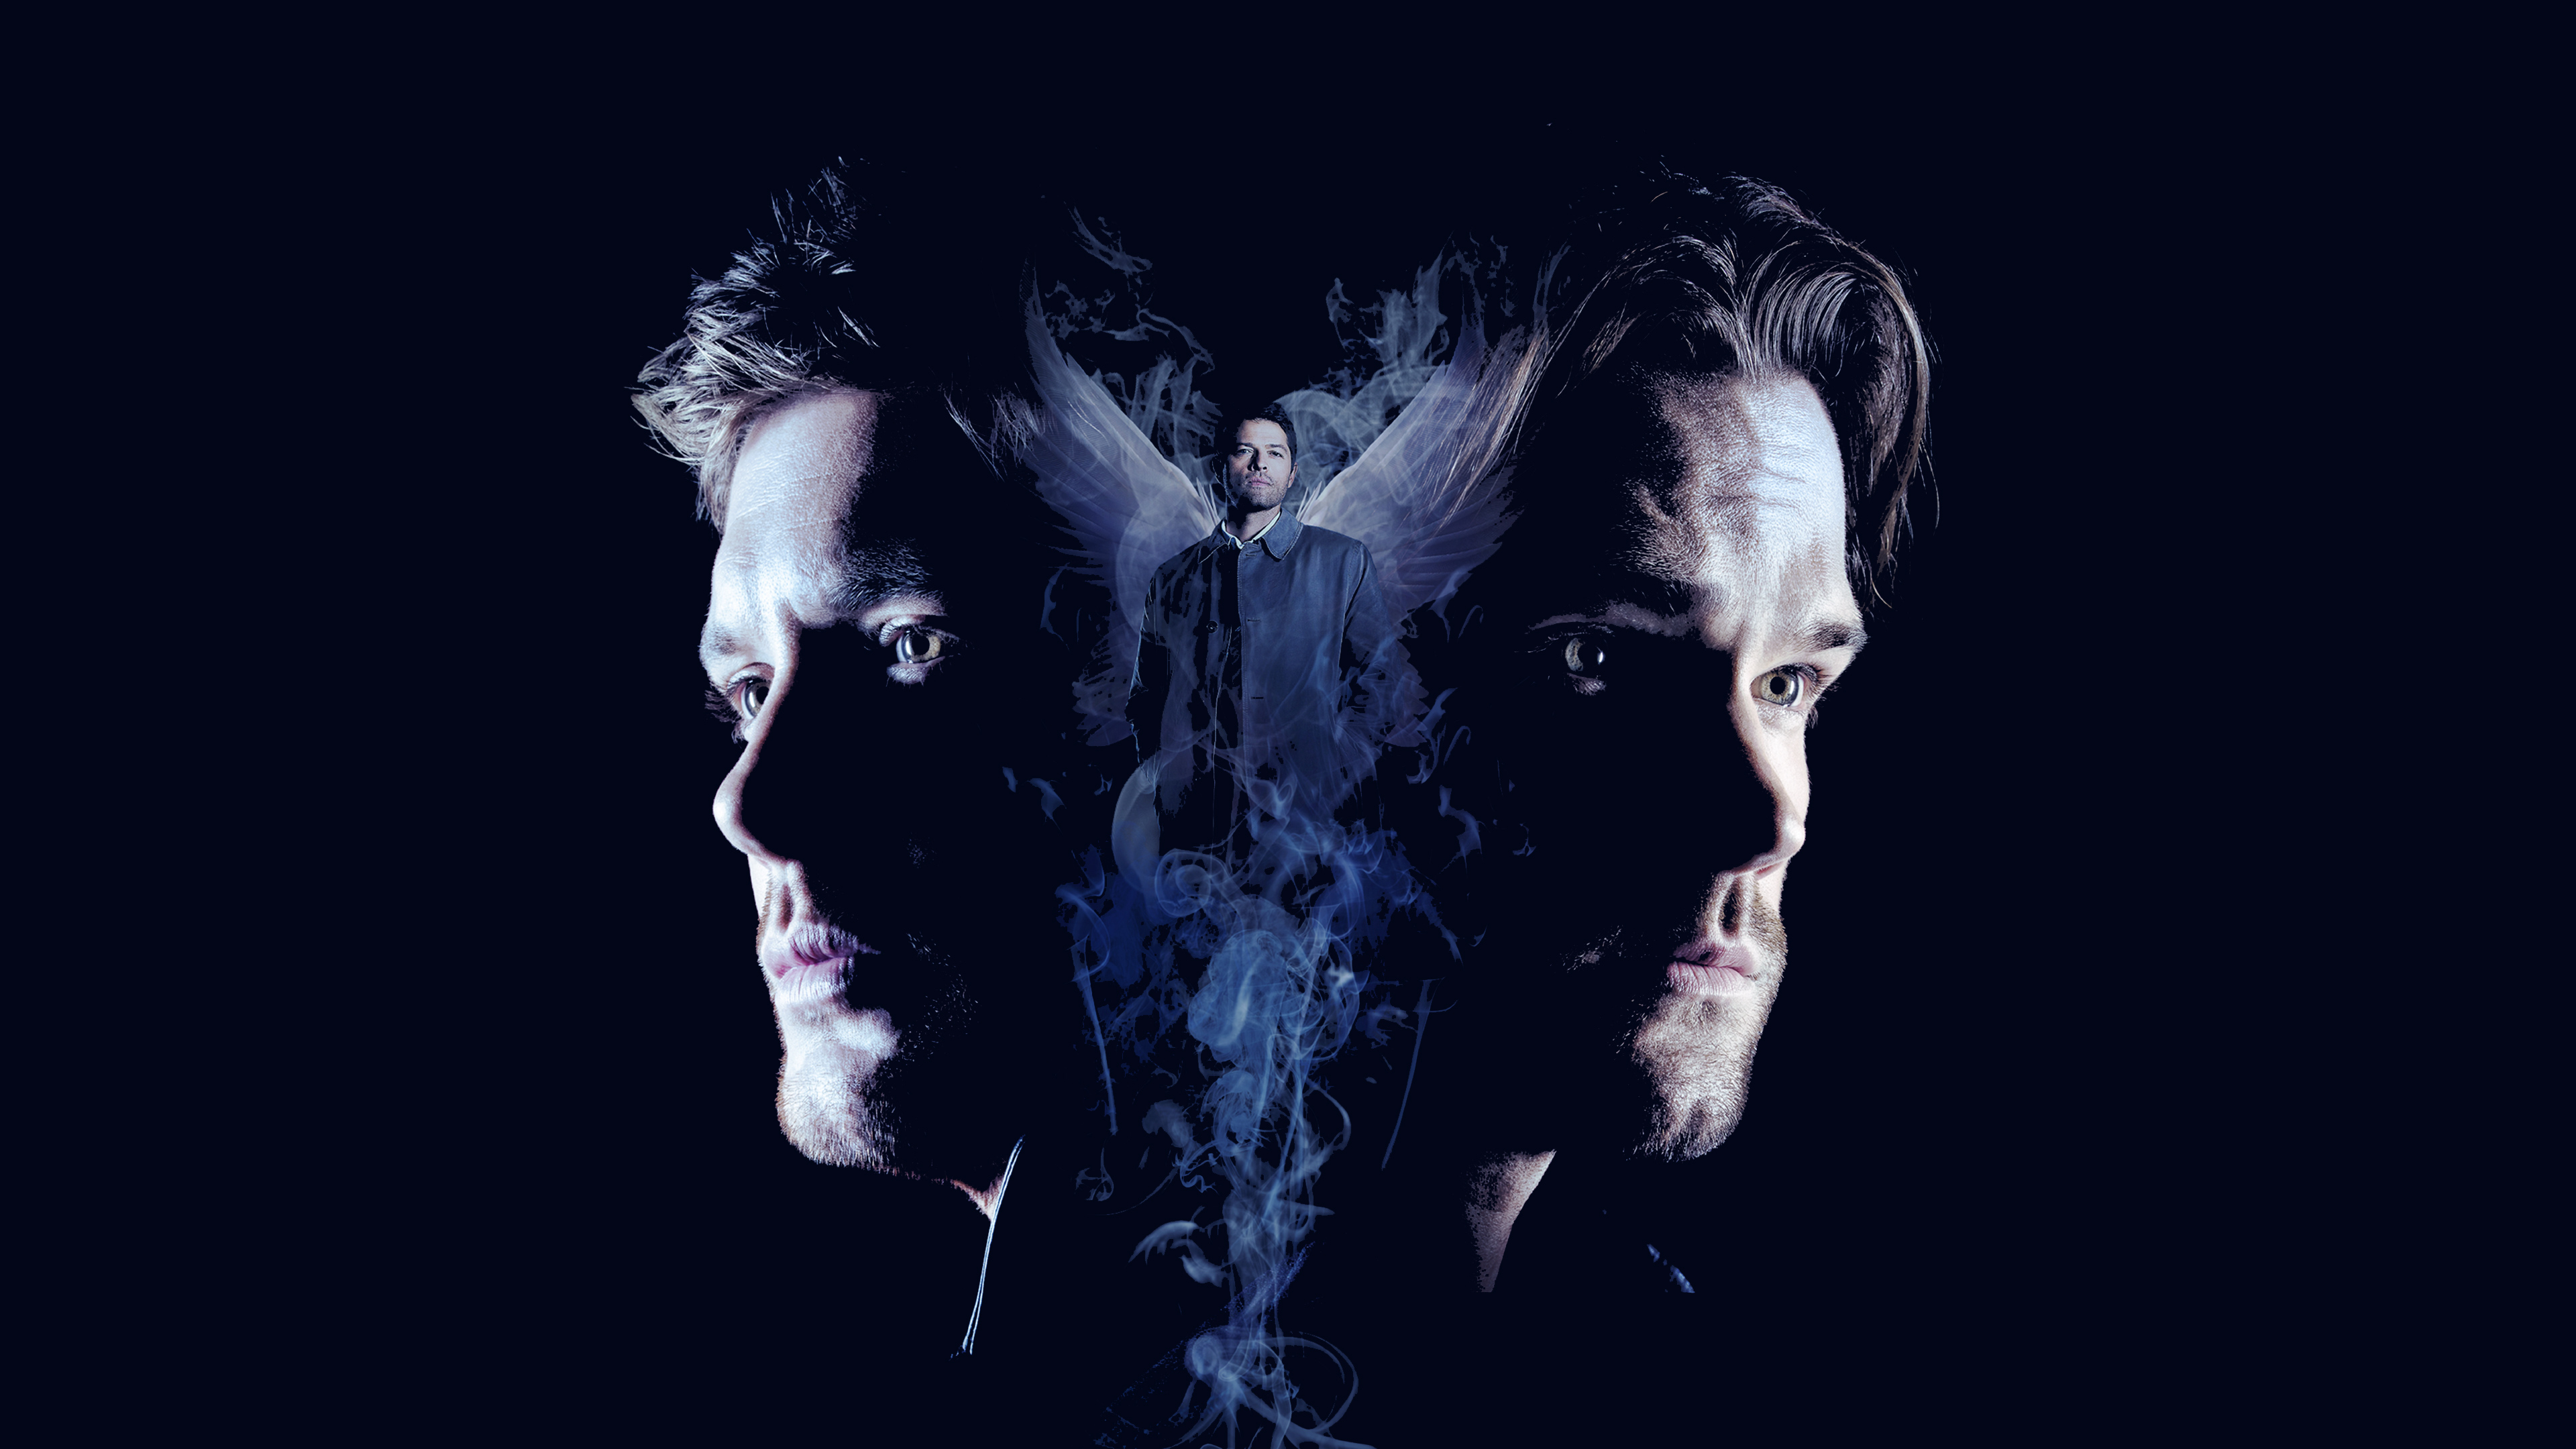 1920x1080 Supernatural Season 15 4k Laptop Full Hd 1080p Hd 4k Wallpapers Images Backgrounds Photos And Pictures